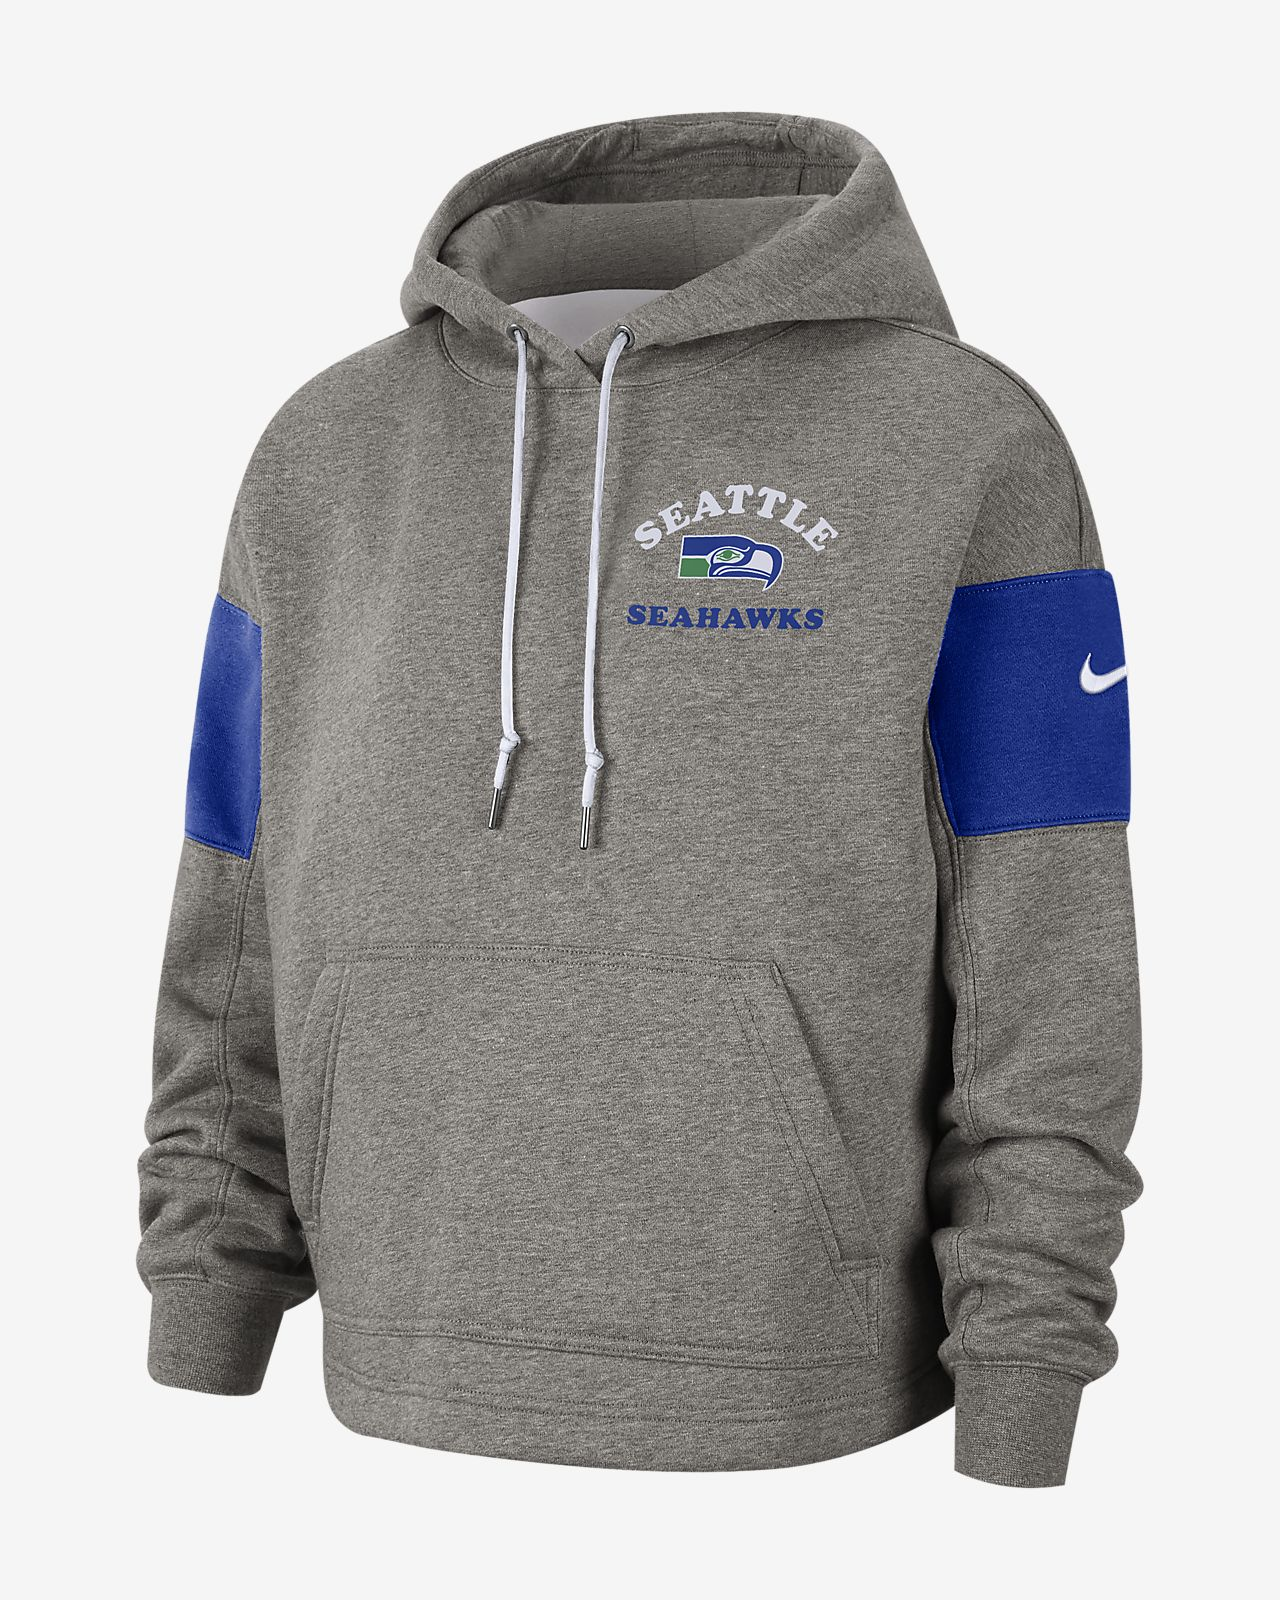 quality design 1868a 14f2d Nike Historic (NFL Seahawks) Women's Pullover Hoodie